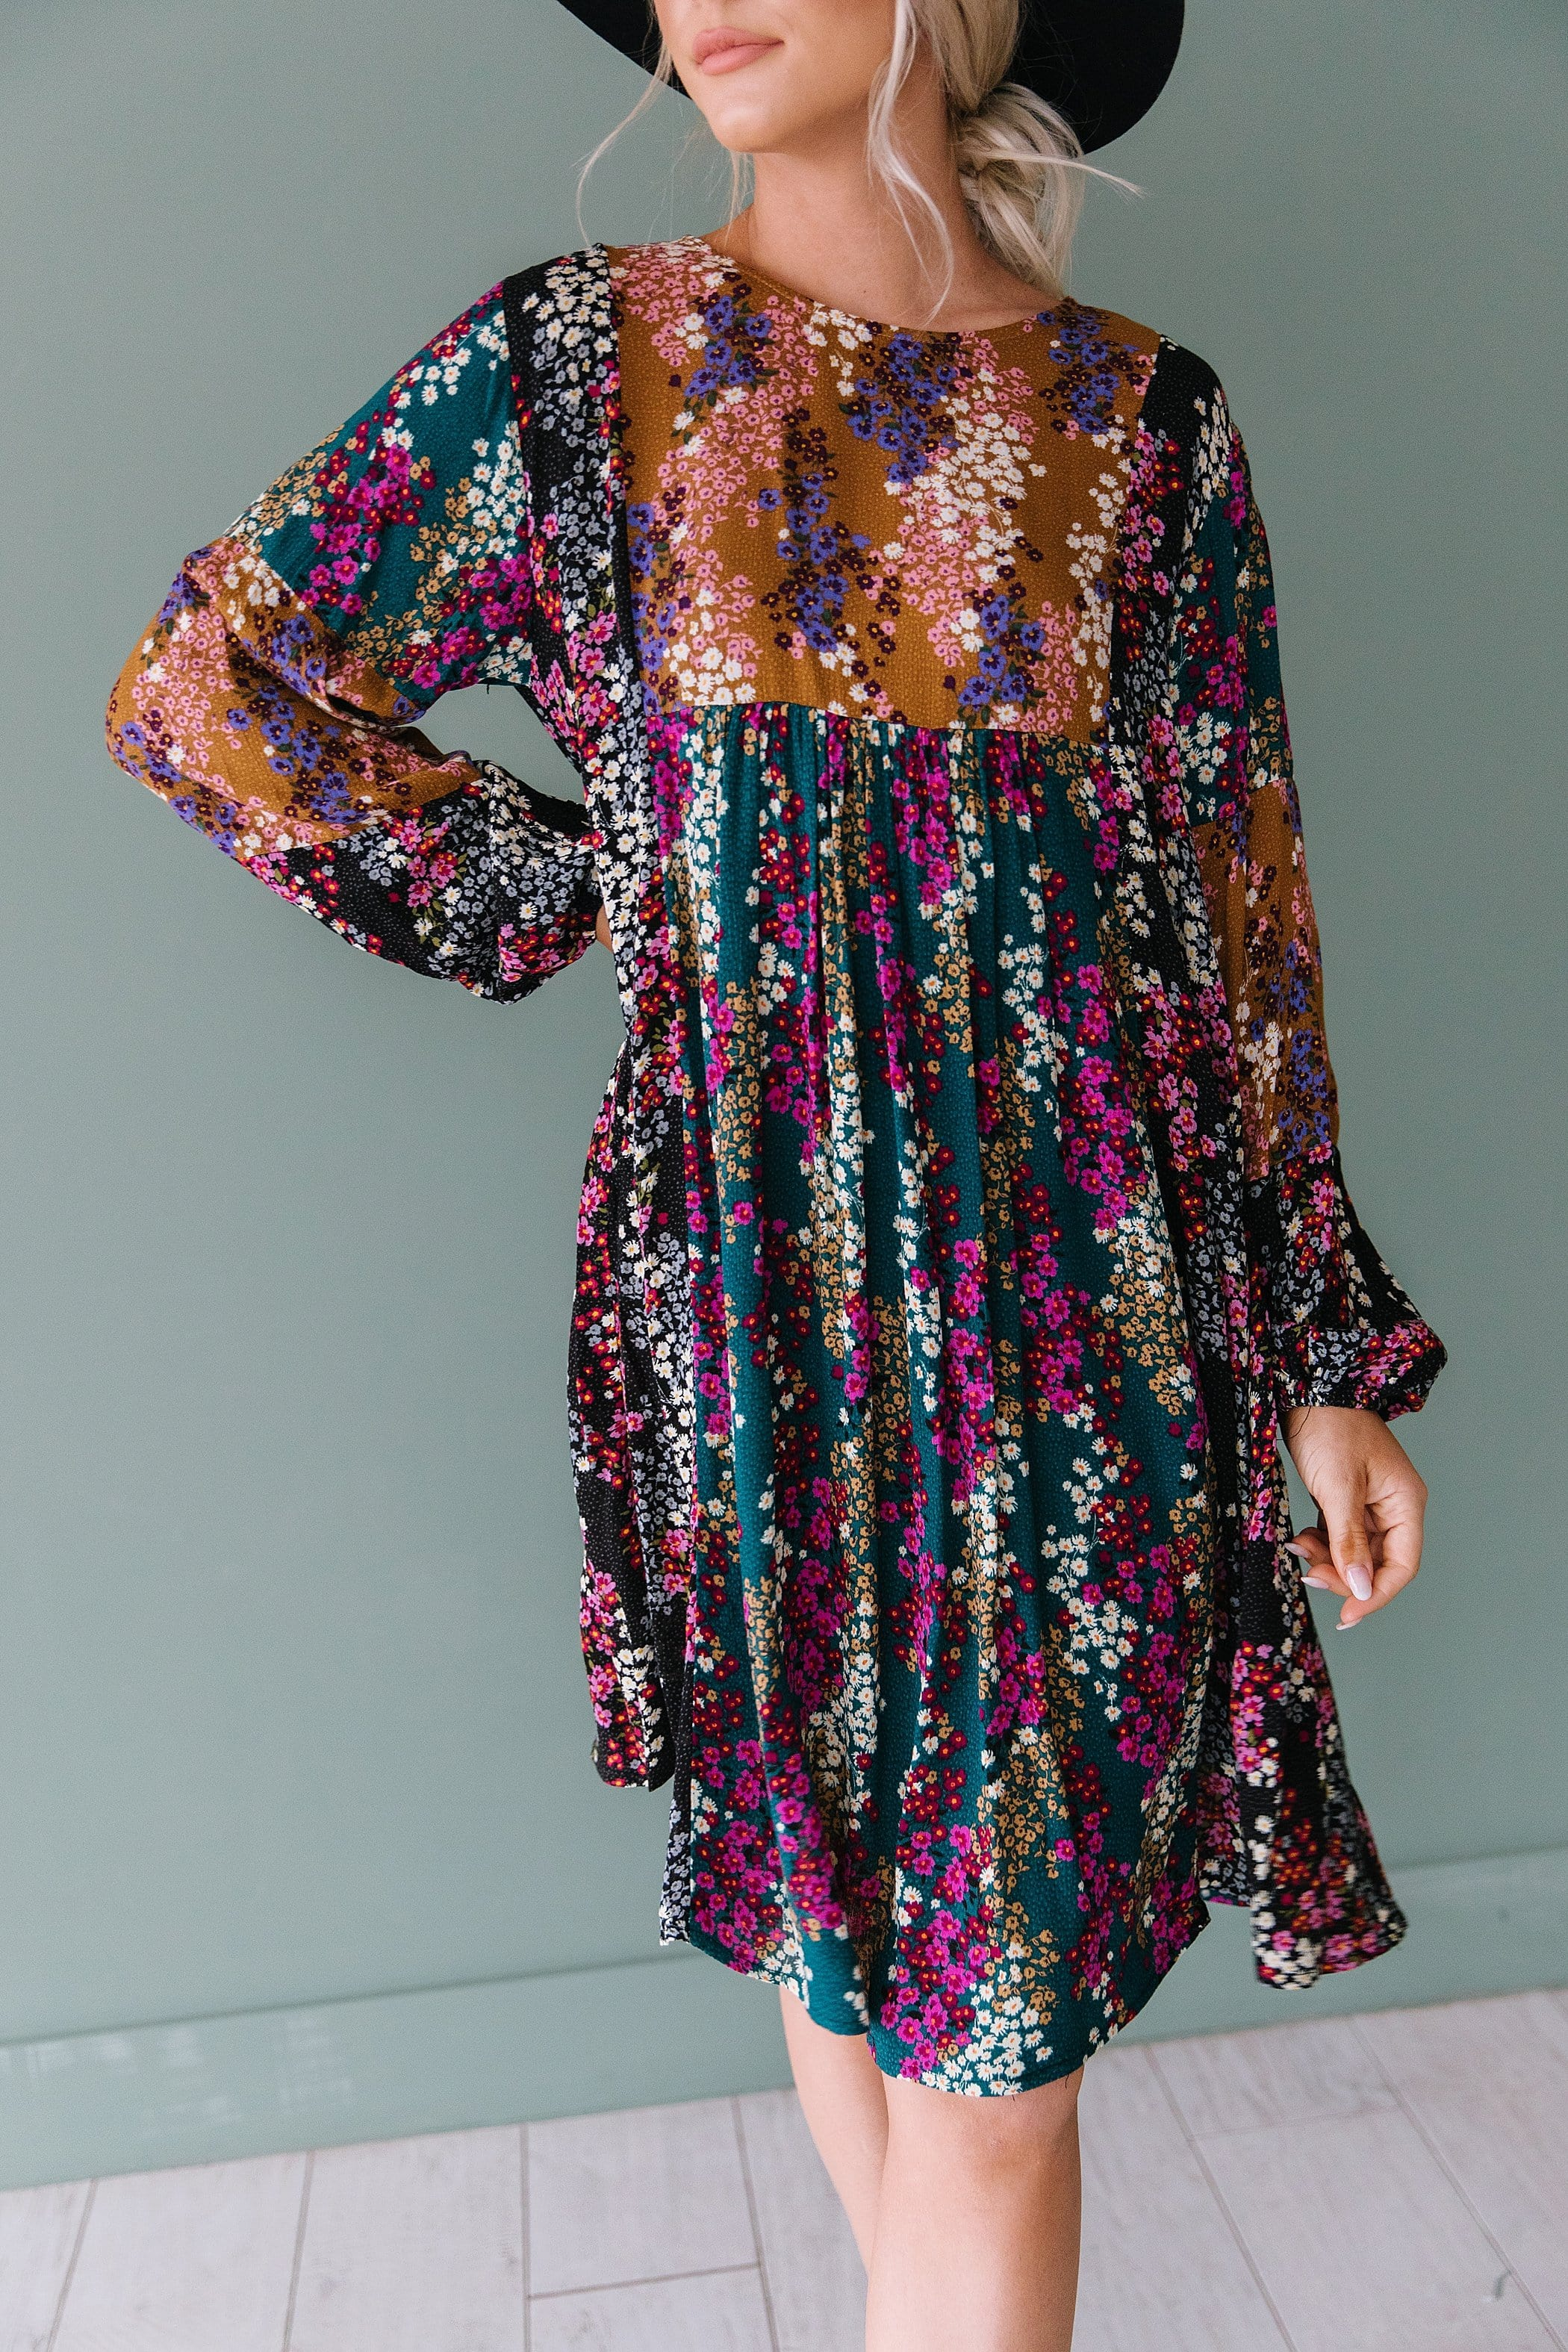 The Harrow Floral Boho Midi Dress in Multi